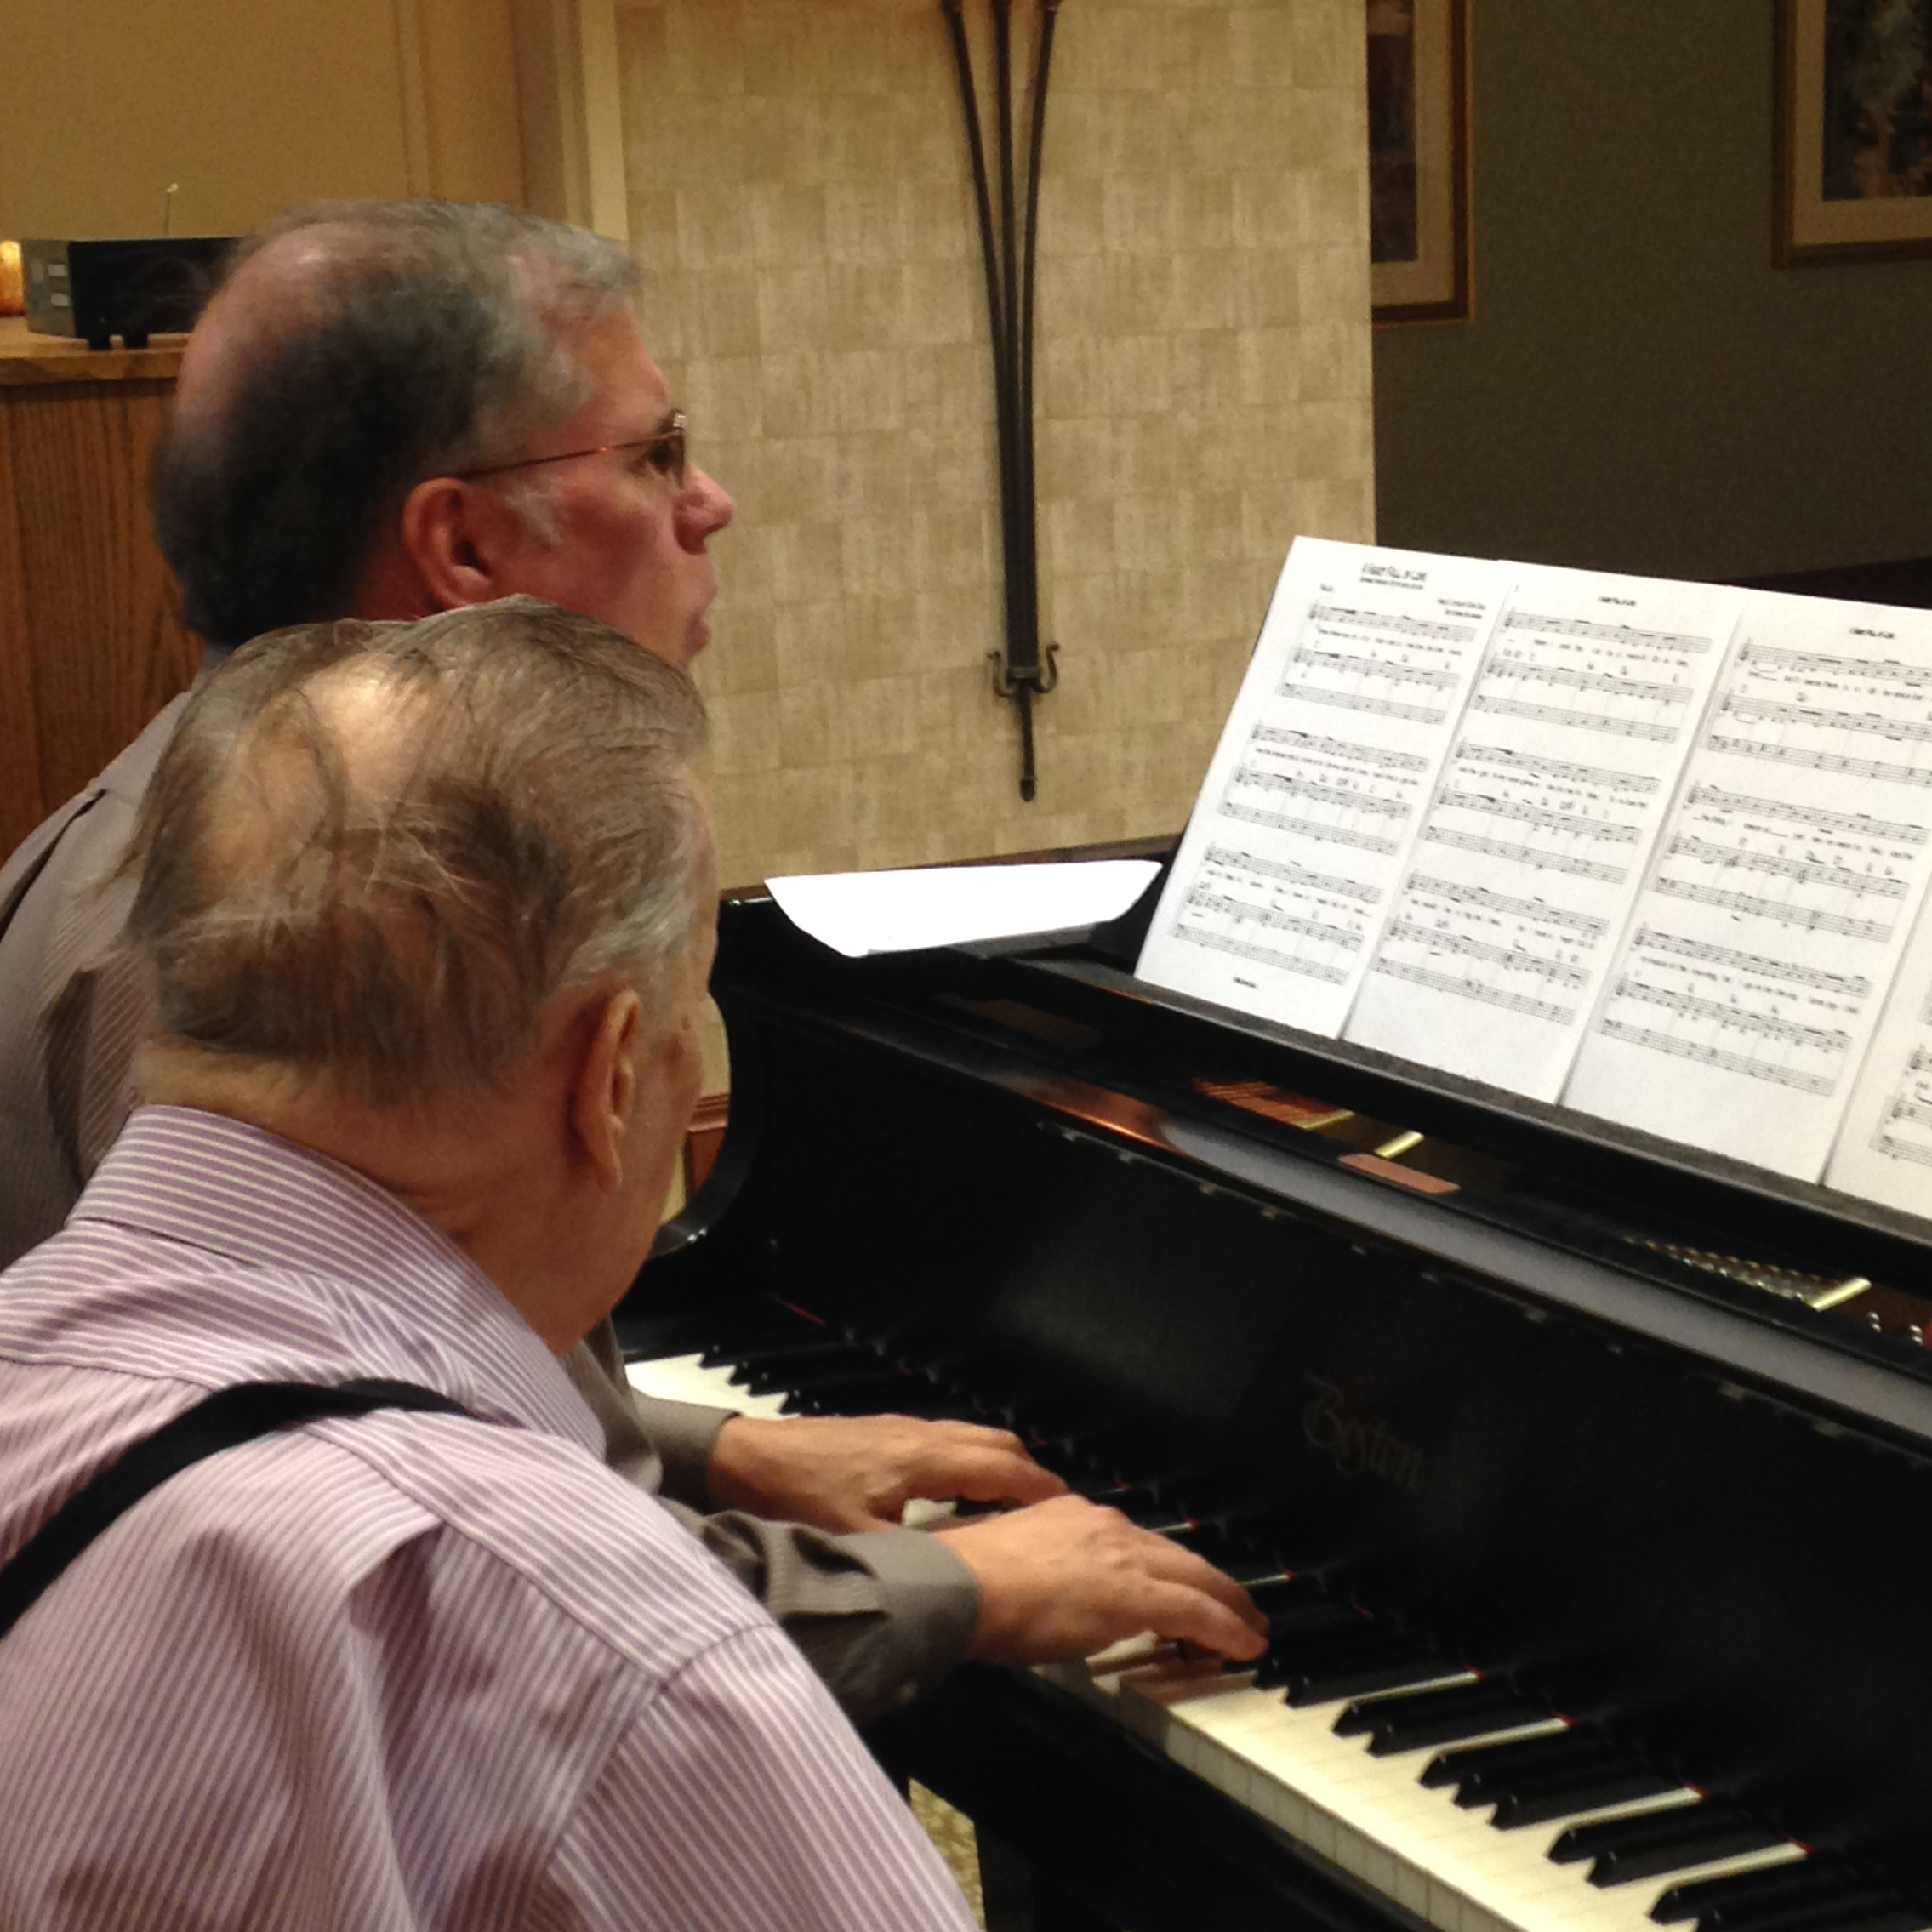 MPR: BLOOMINGTON MAN, 101, REVIVES LOVE SONGS FROM LONG AGO